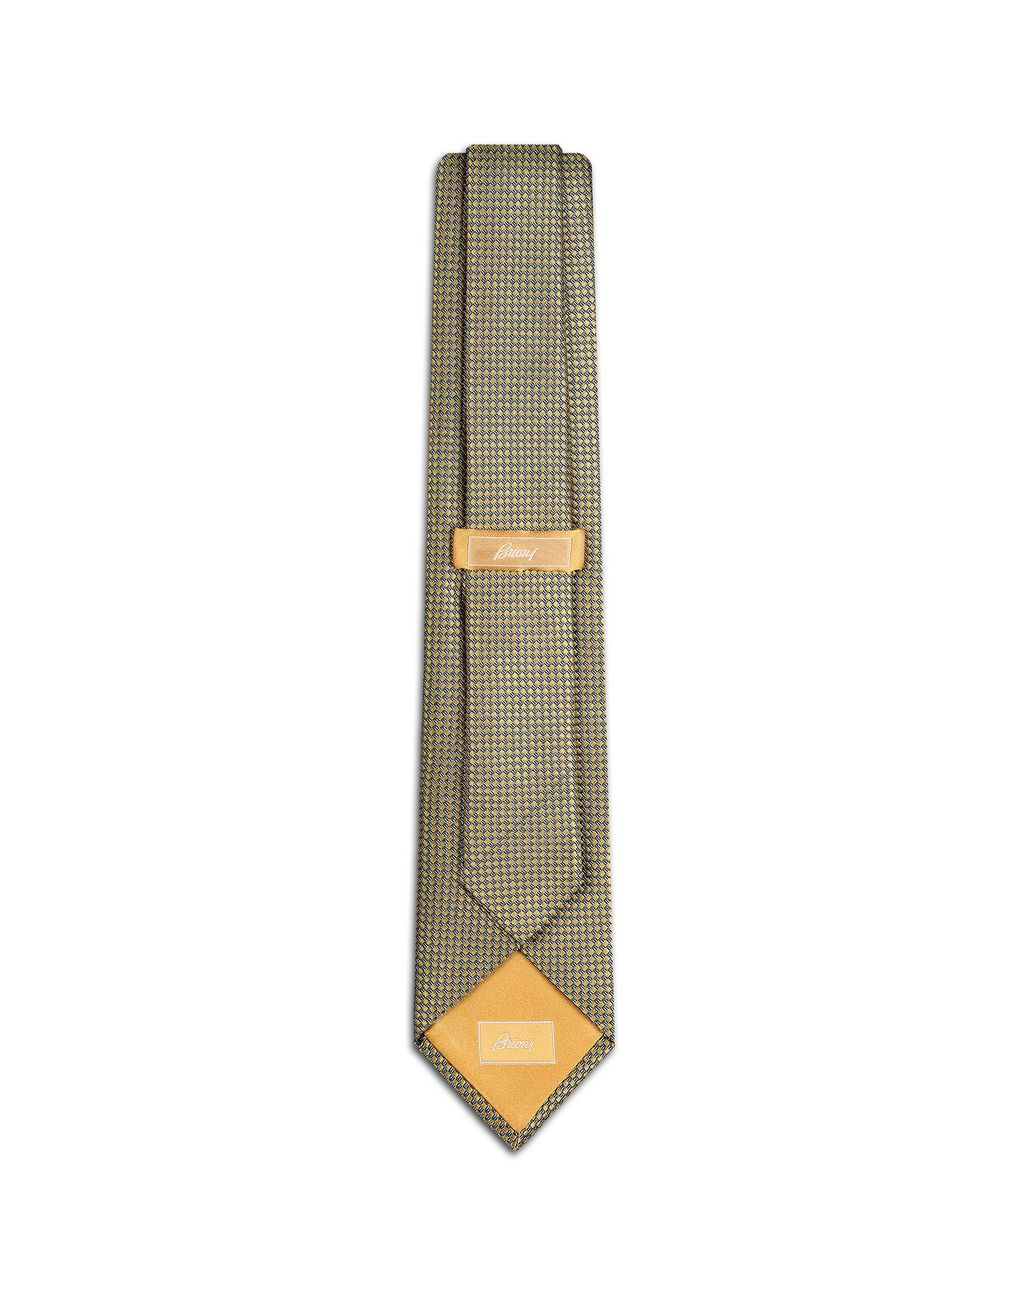 BRIONI Cravate à motif miniature jaune Cravate [*** pickupInStoreShippingNotGuaranteed_info ***] r